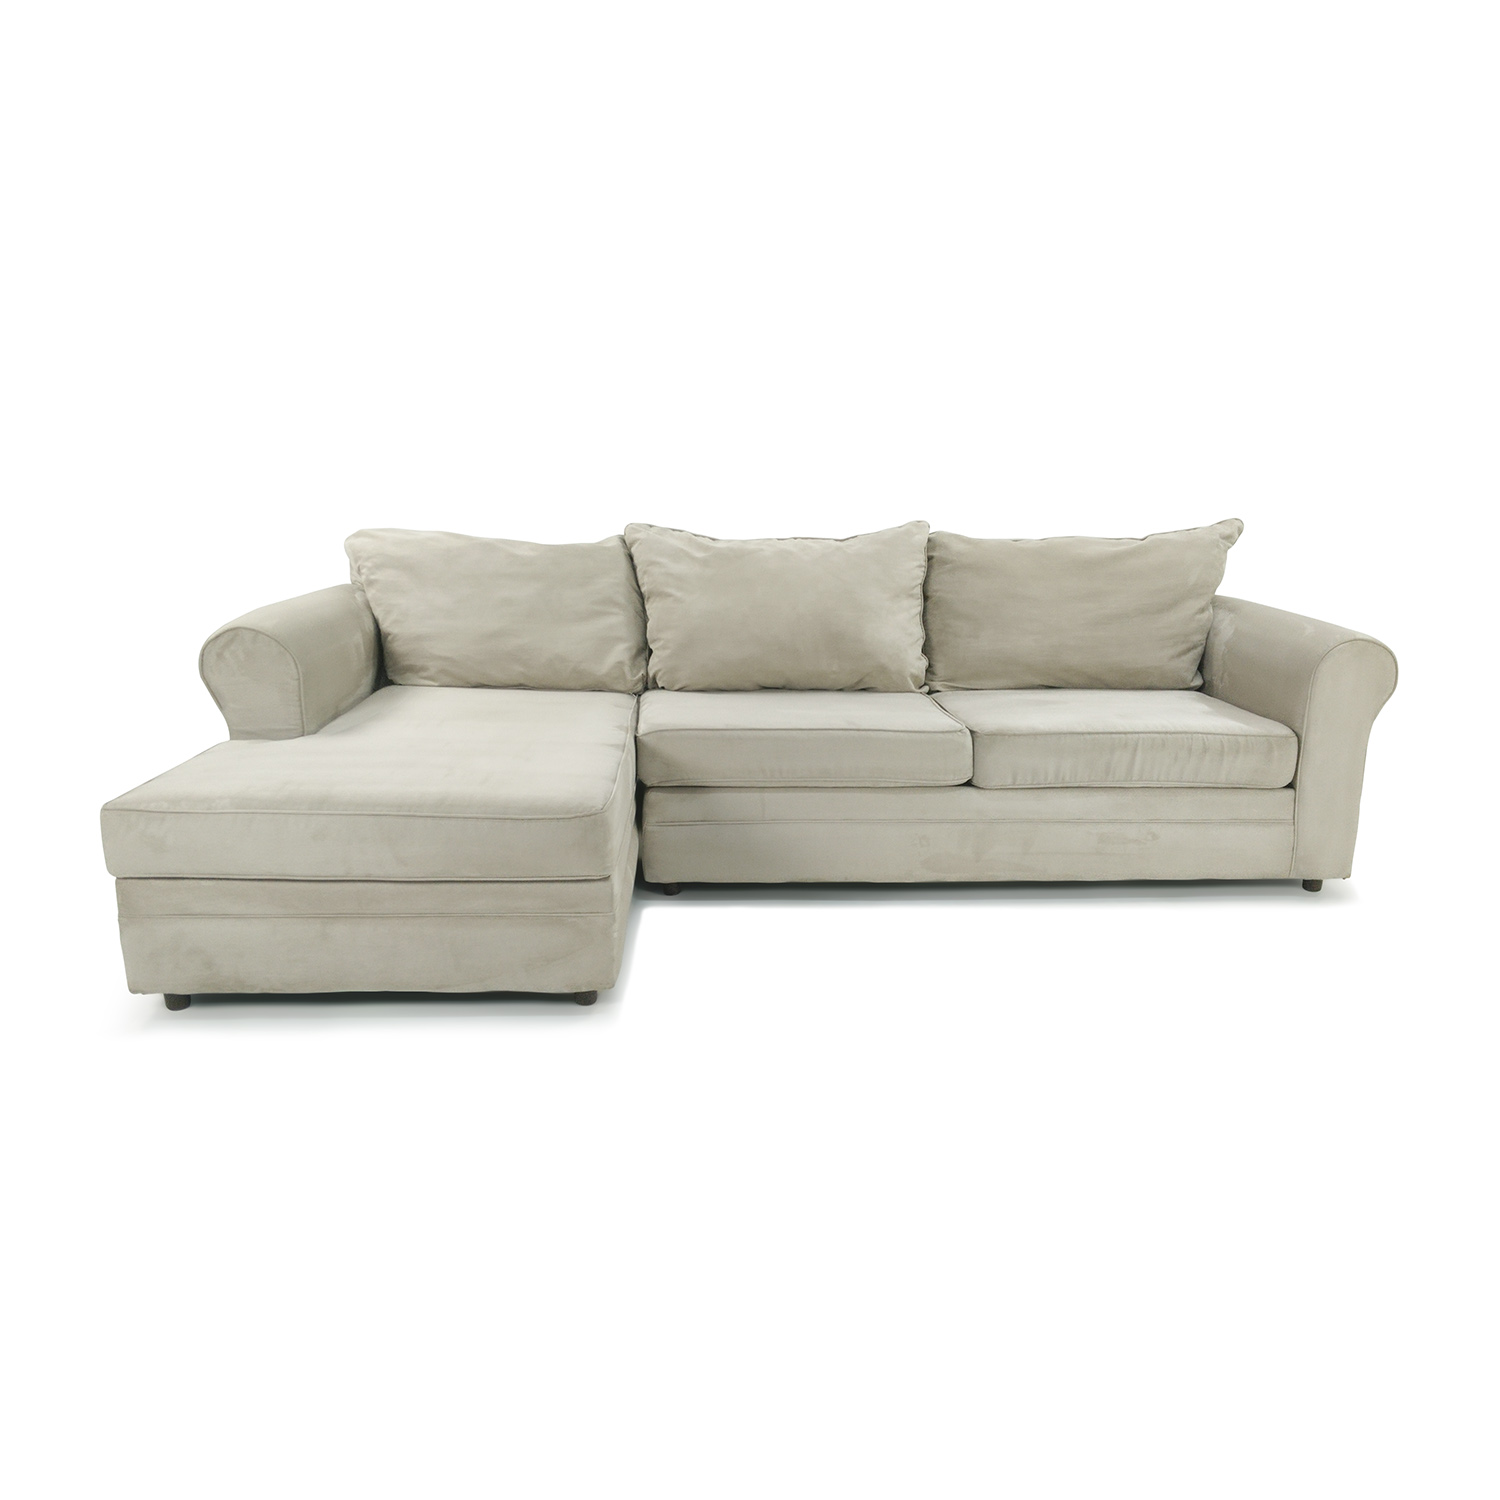 bobs furniture sleeper sofa overstock sofas sectional charisma 2 piece right arm facing